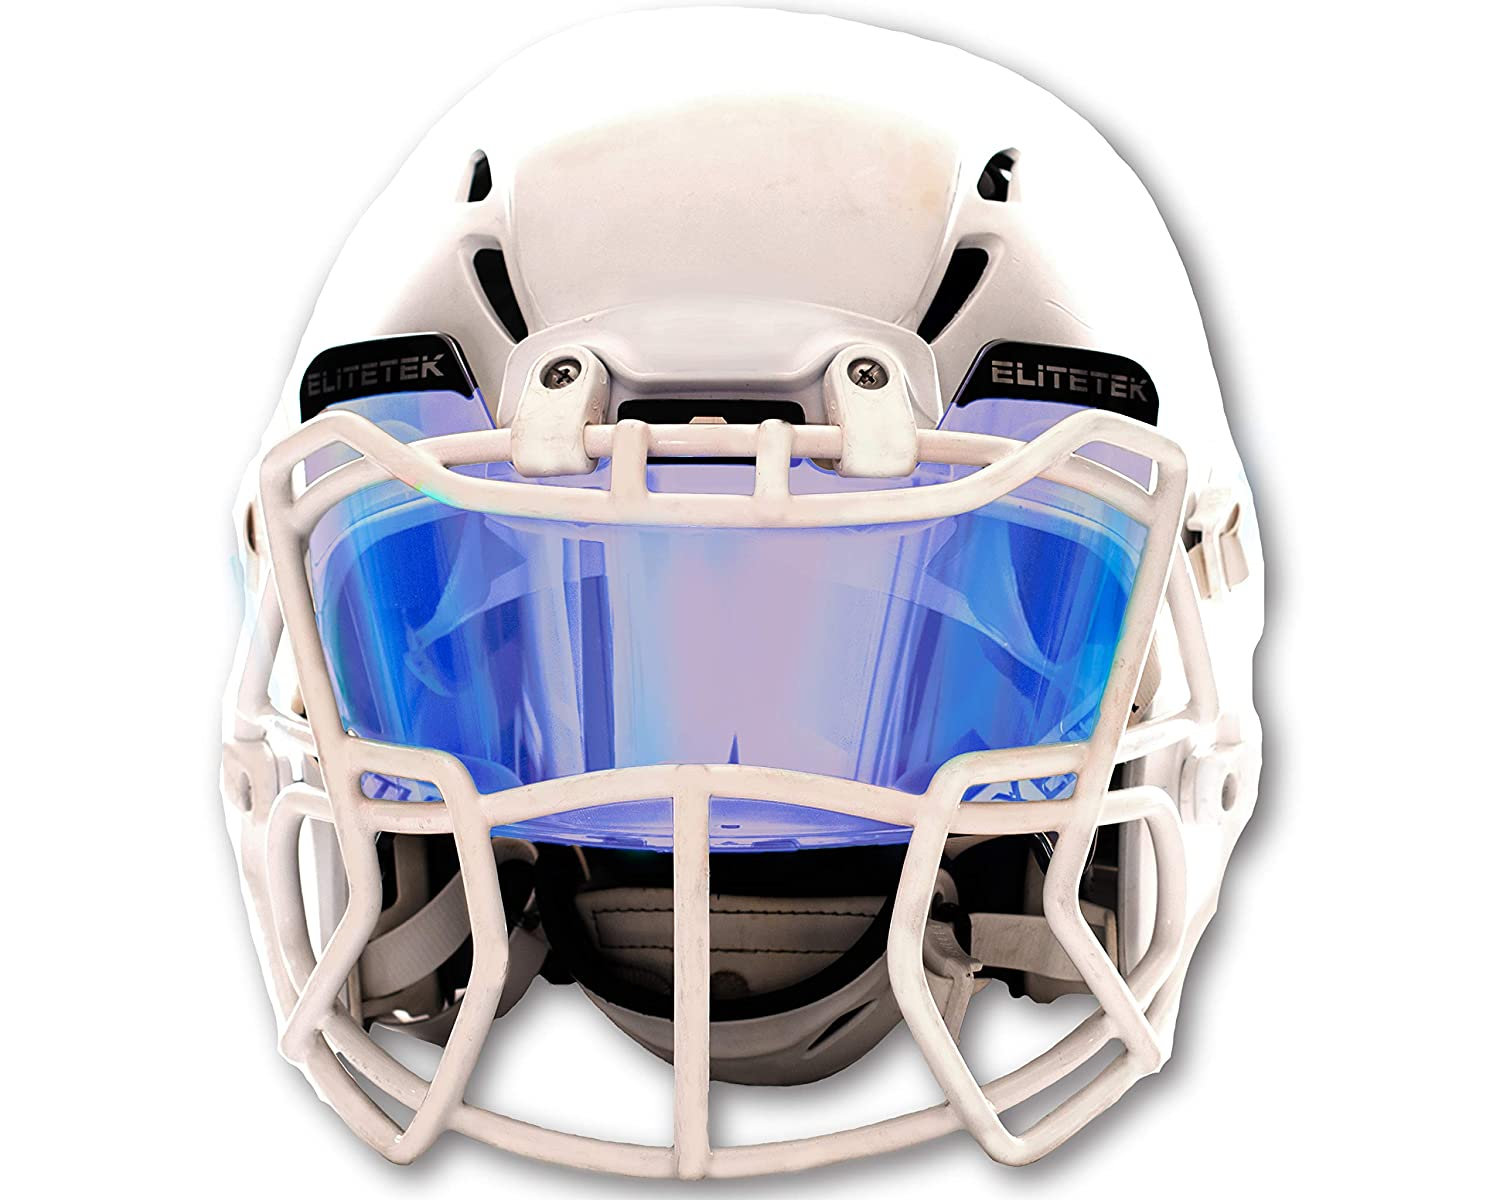 866dc5e32 Amazon.com: EliteTek Color Football & Lacrosse Eye-Shield Facemask Visor -  Fits Youth & Adult Helmets (Black Gold Smoked): Sports & Outdoors